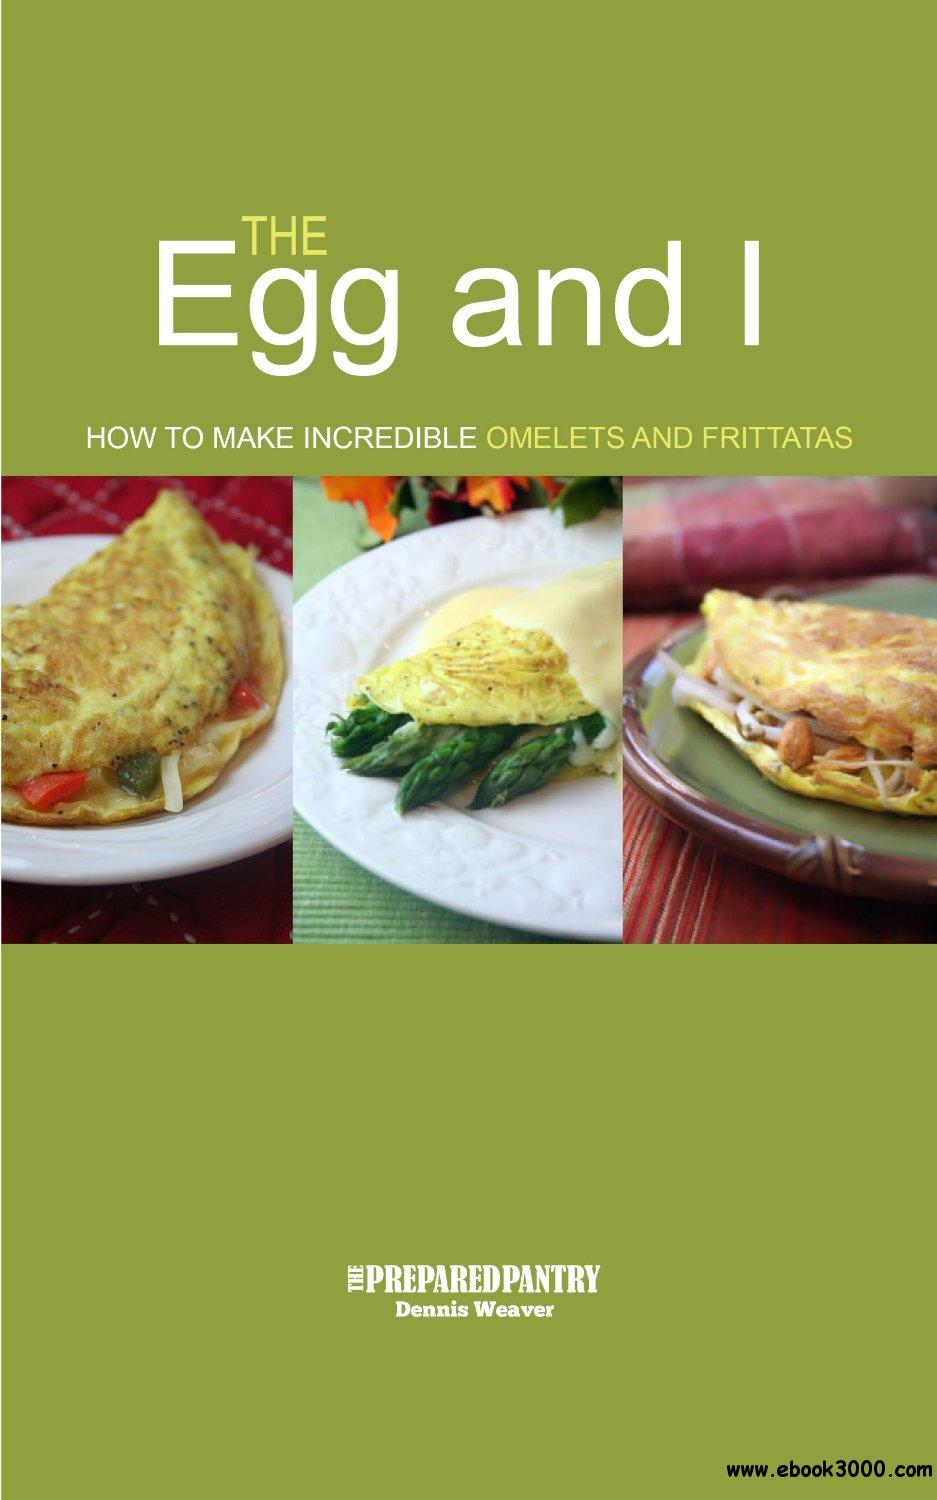 The Egg and I: How to Make Incredible Omelets and Frittatas free download